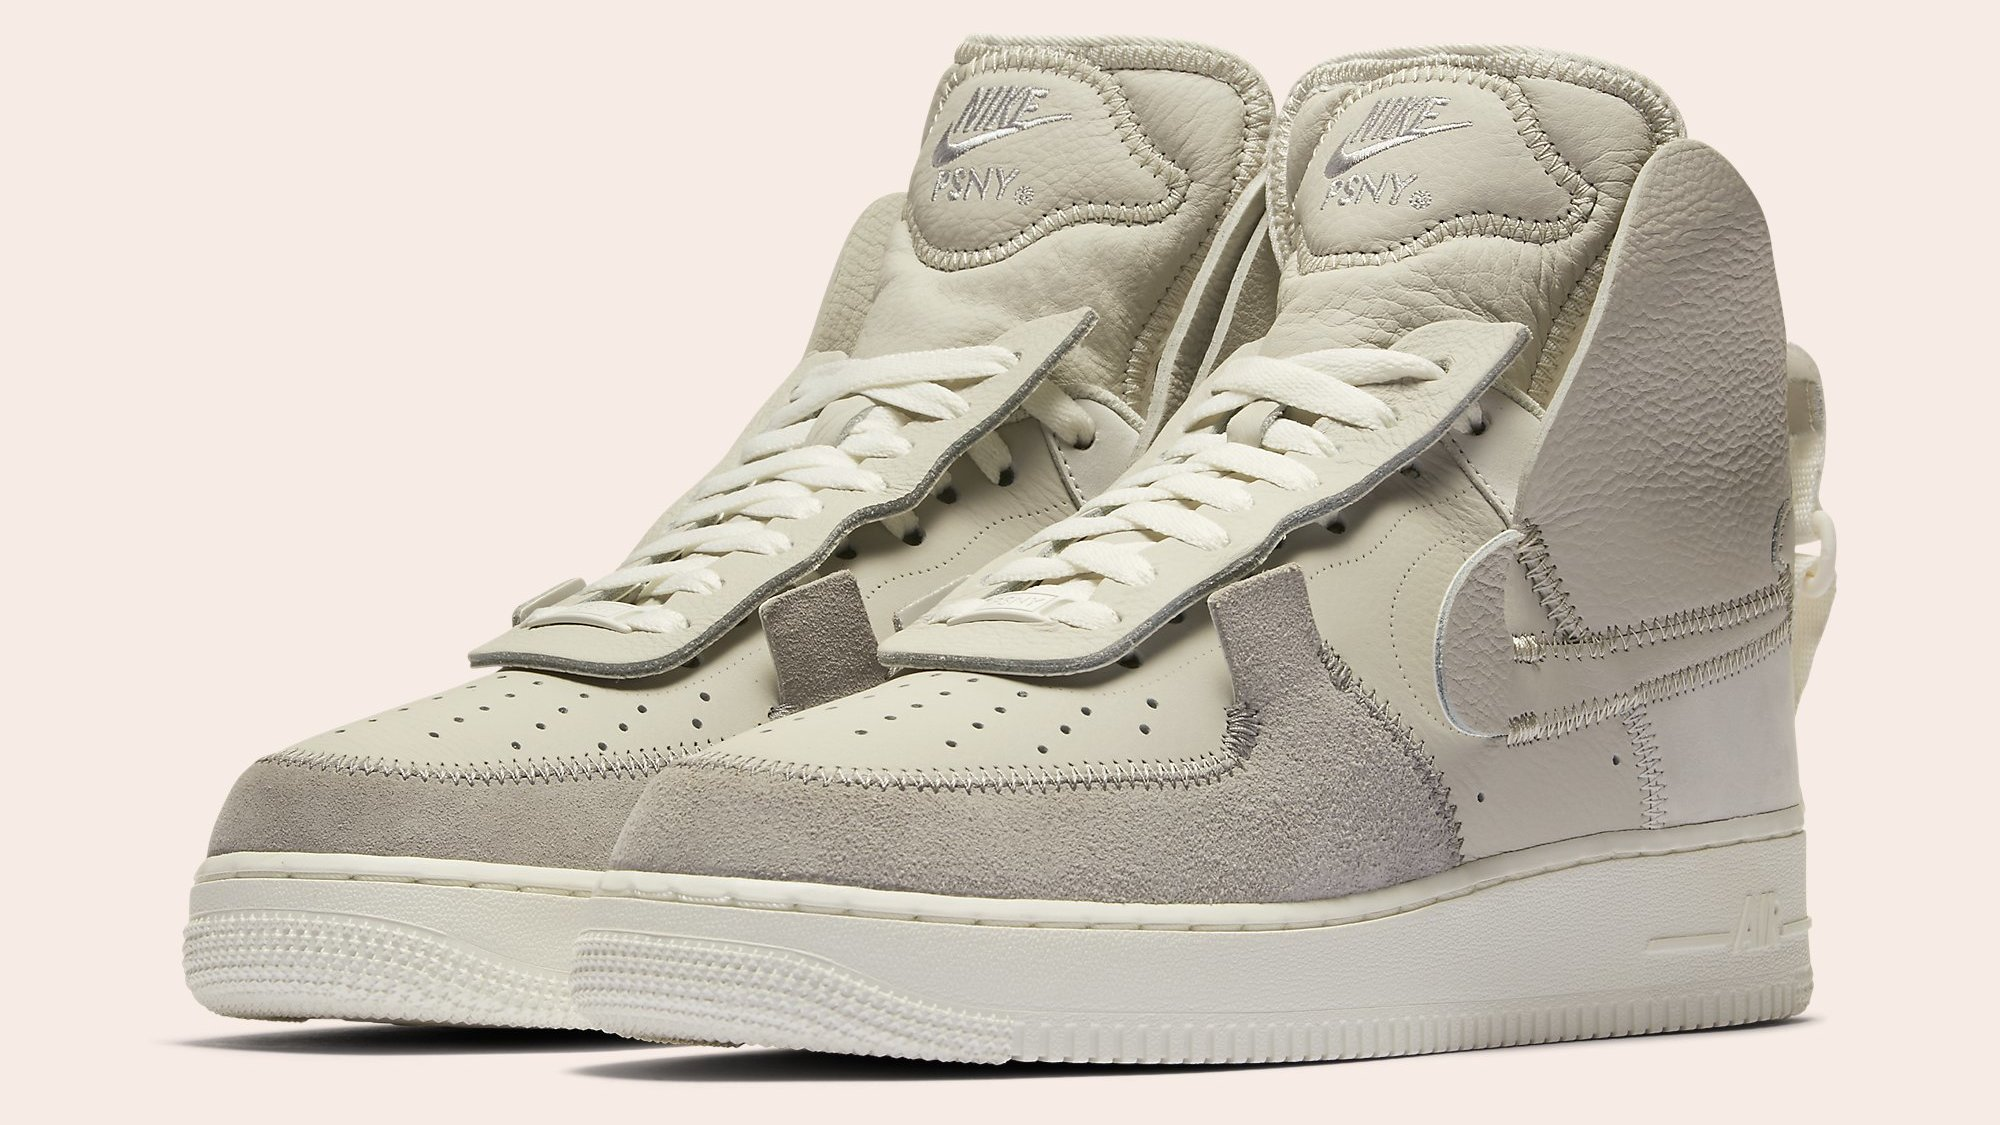 0702ef0876e PSNY x Nike Air Force 1 High Black White Wolf Grey Release Date ...